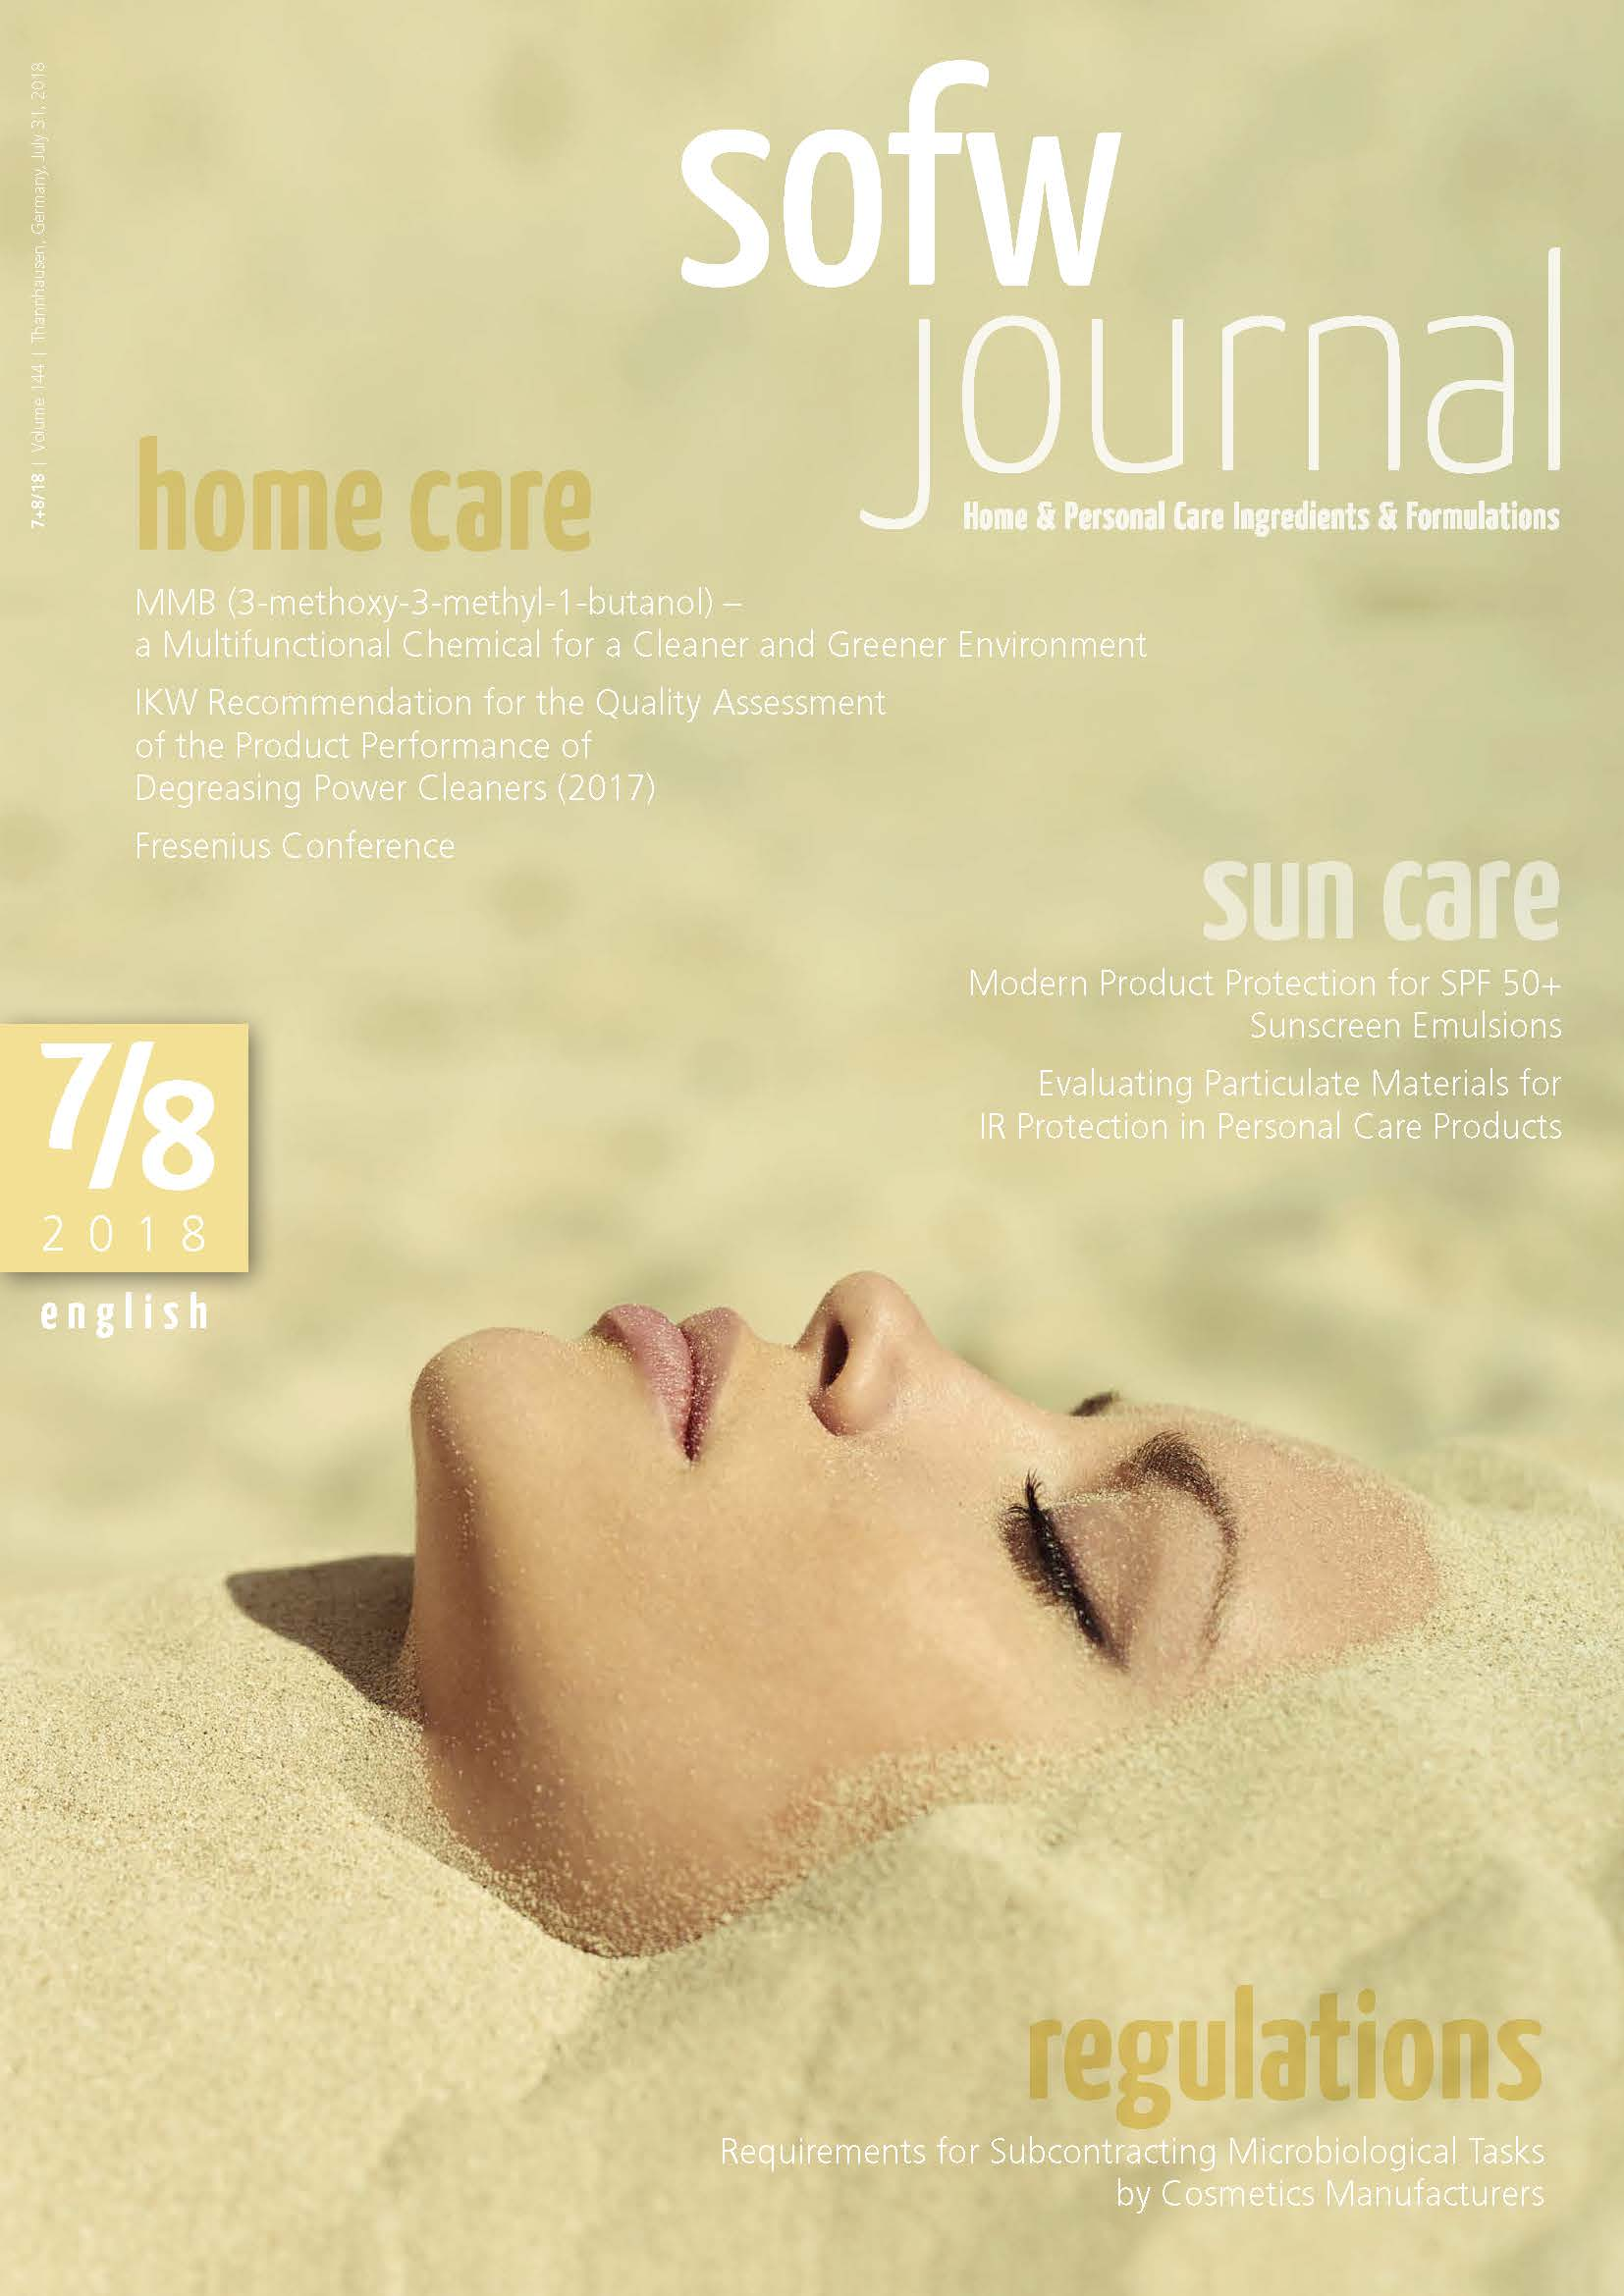 sofwjournal_en_2018_07_cover